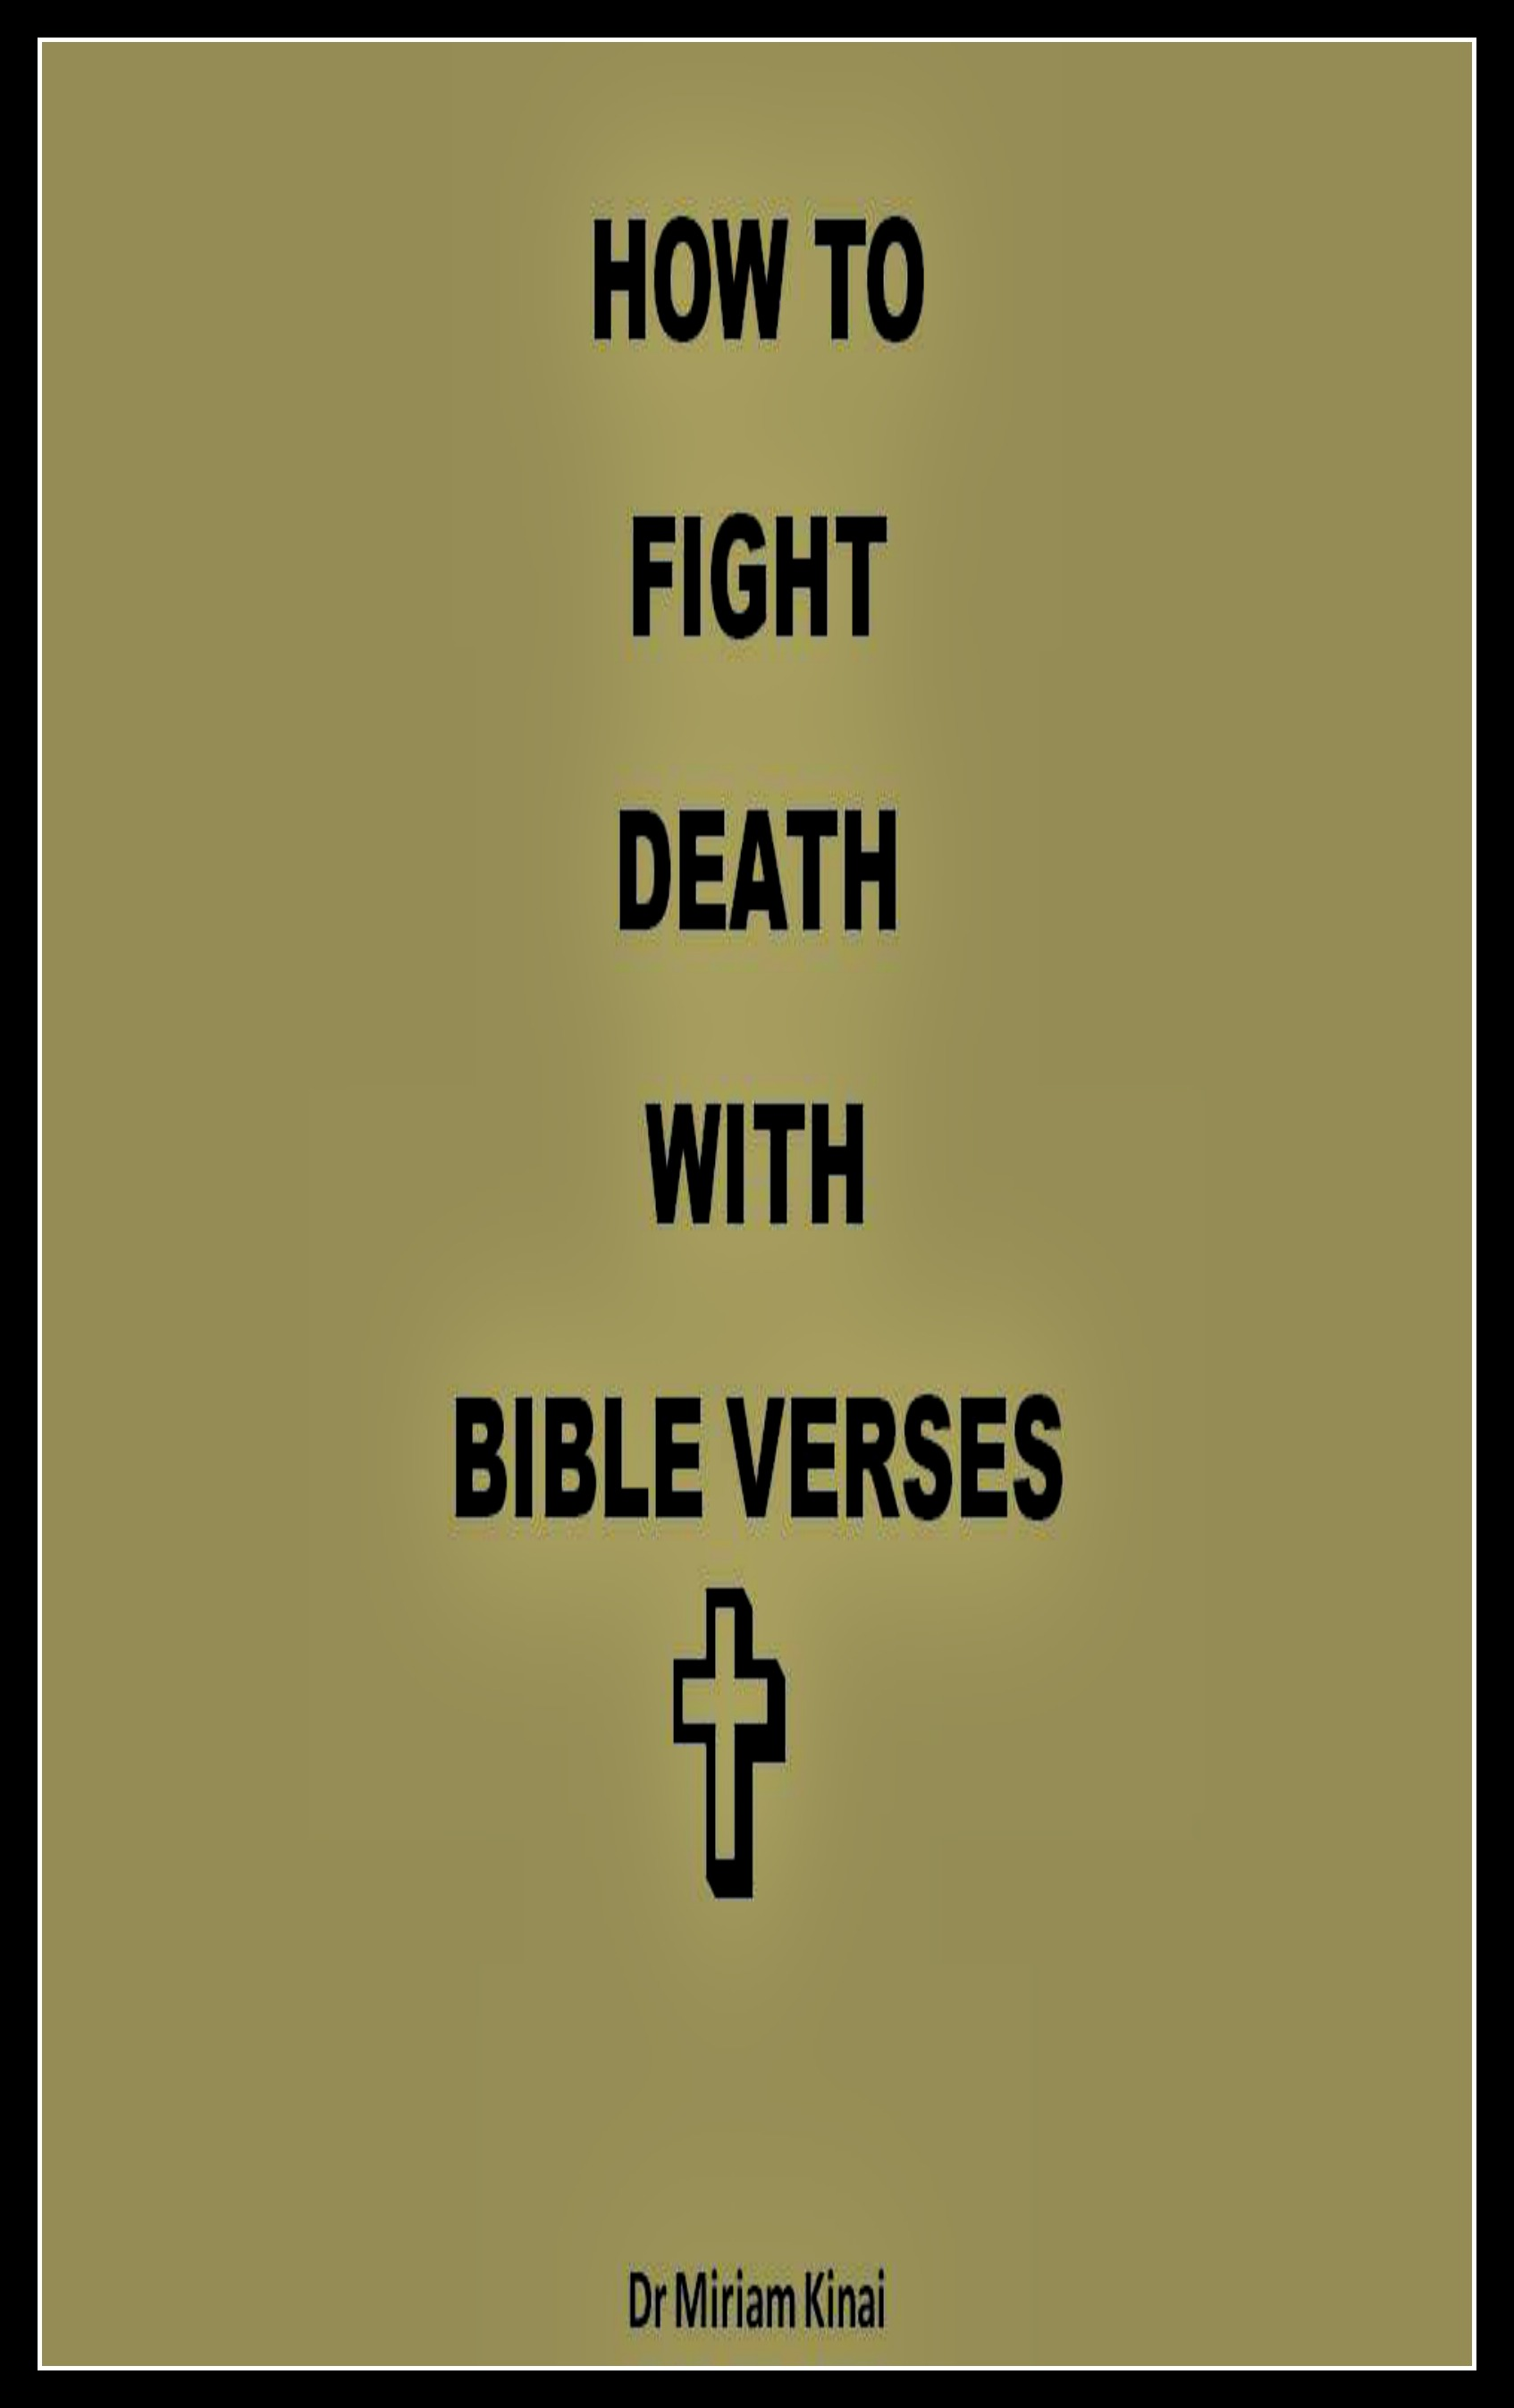 an overview of the concept of death in the bible Christian concepts of salvation: an introduction to ancient & modern beliefs salvation in the bible: the bible appears to teach clearly that most people -- the unsaved -- will go to hell for eternal punishment after death.